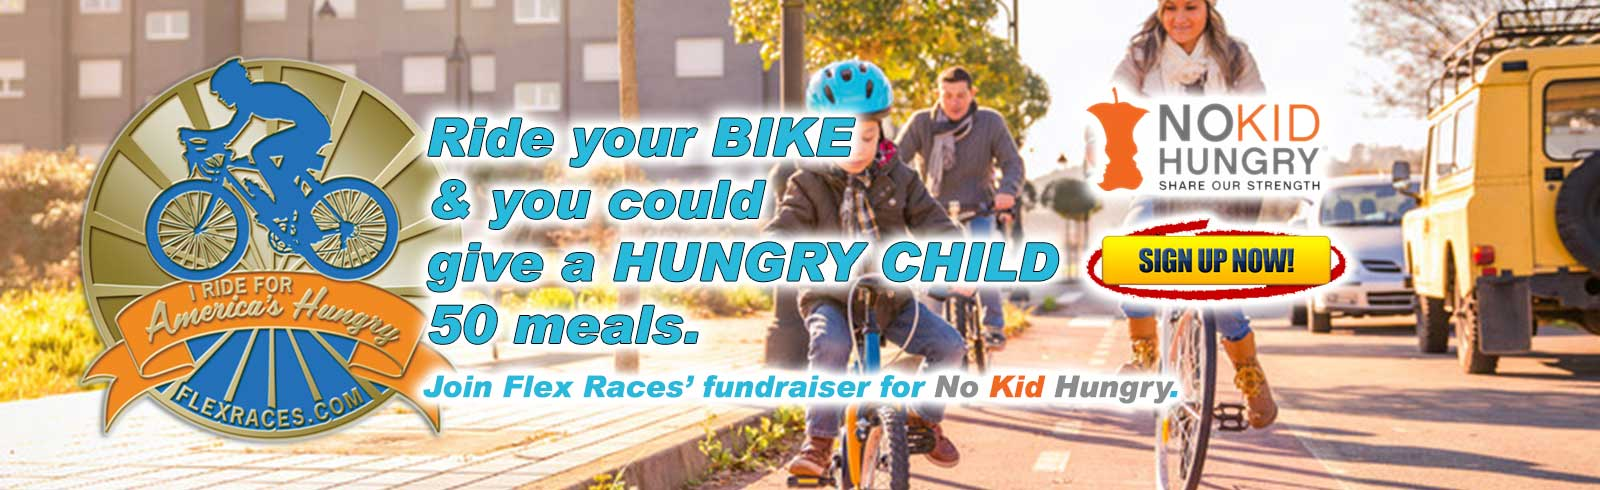 Ride your bike and feed America's kids